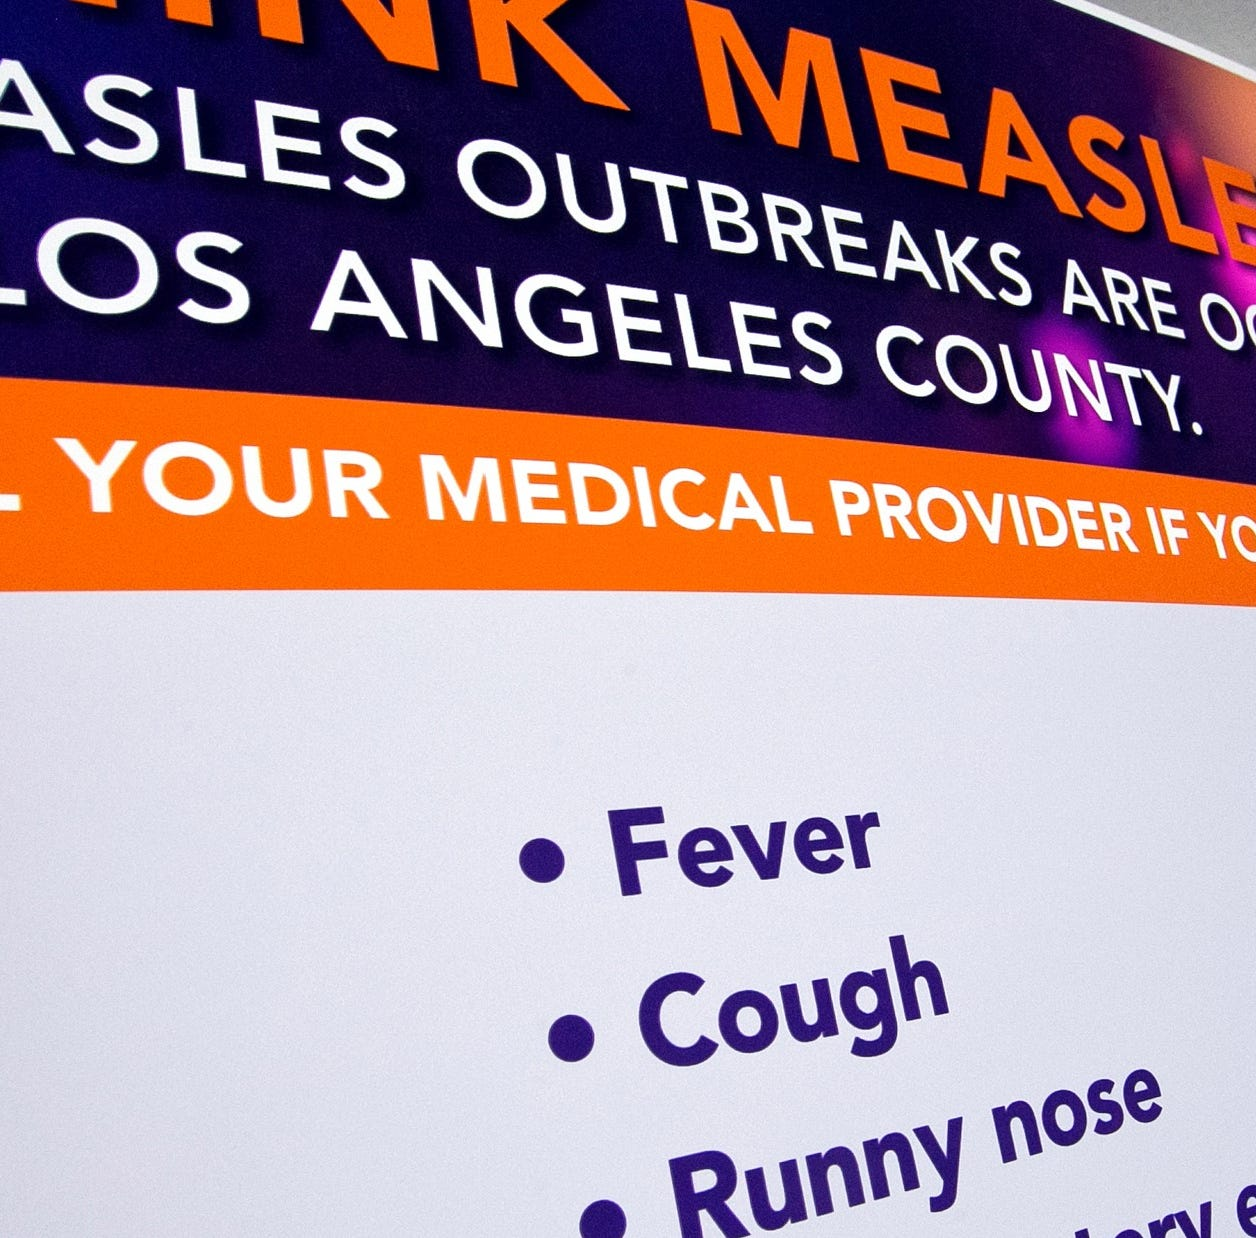 Similar causes for measles, anti-Semitism plagues